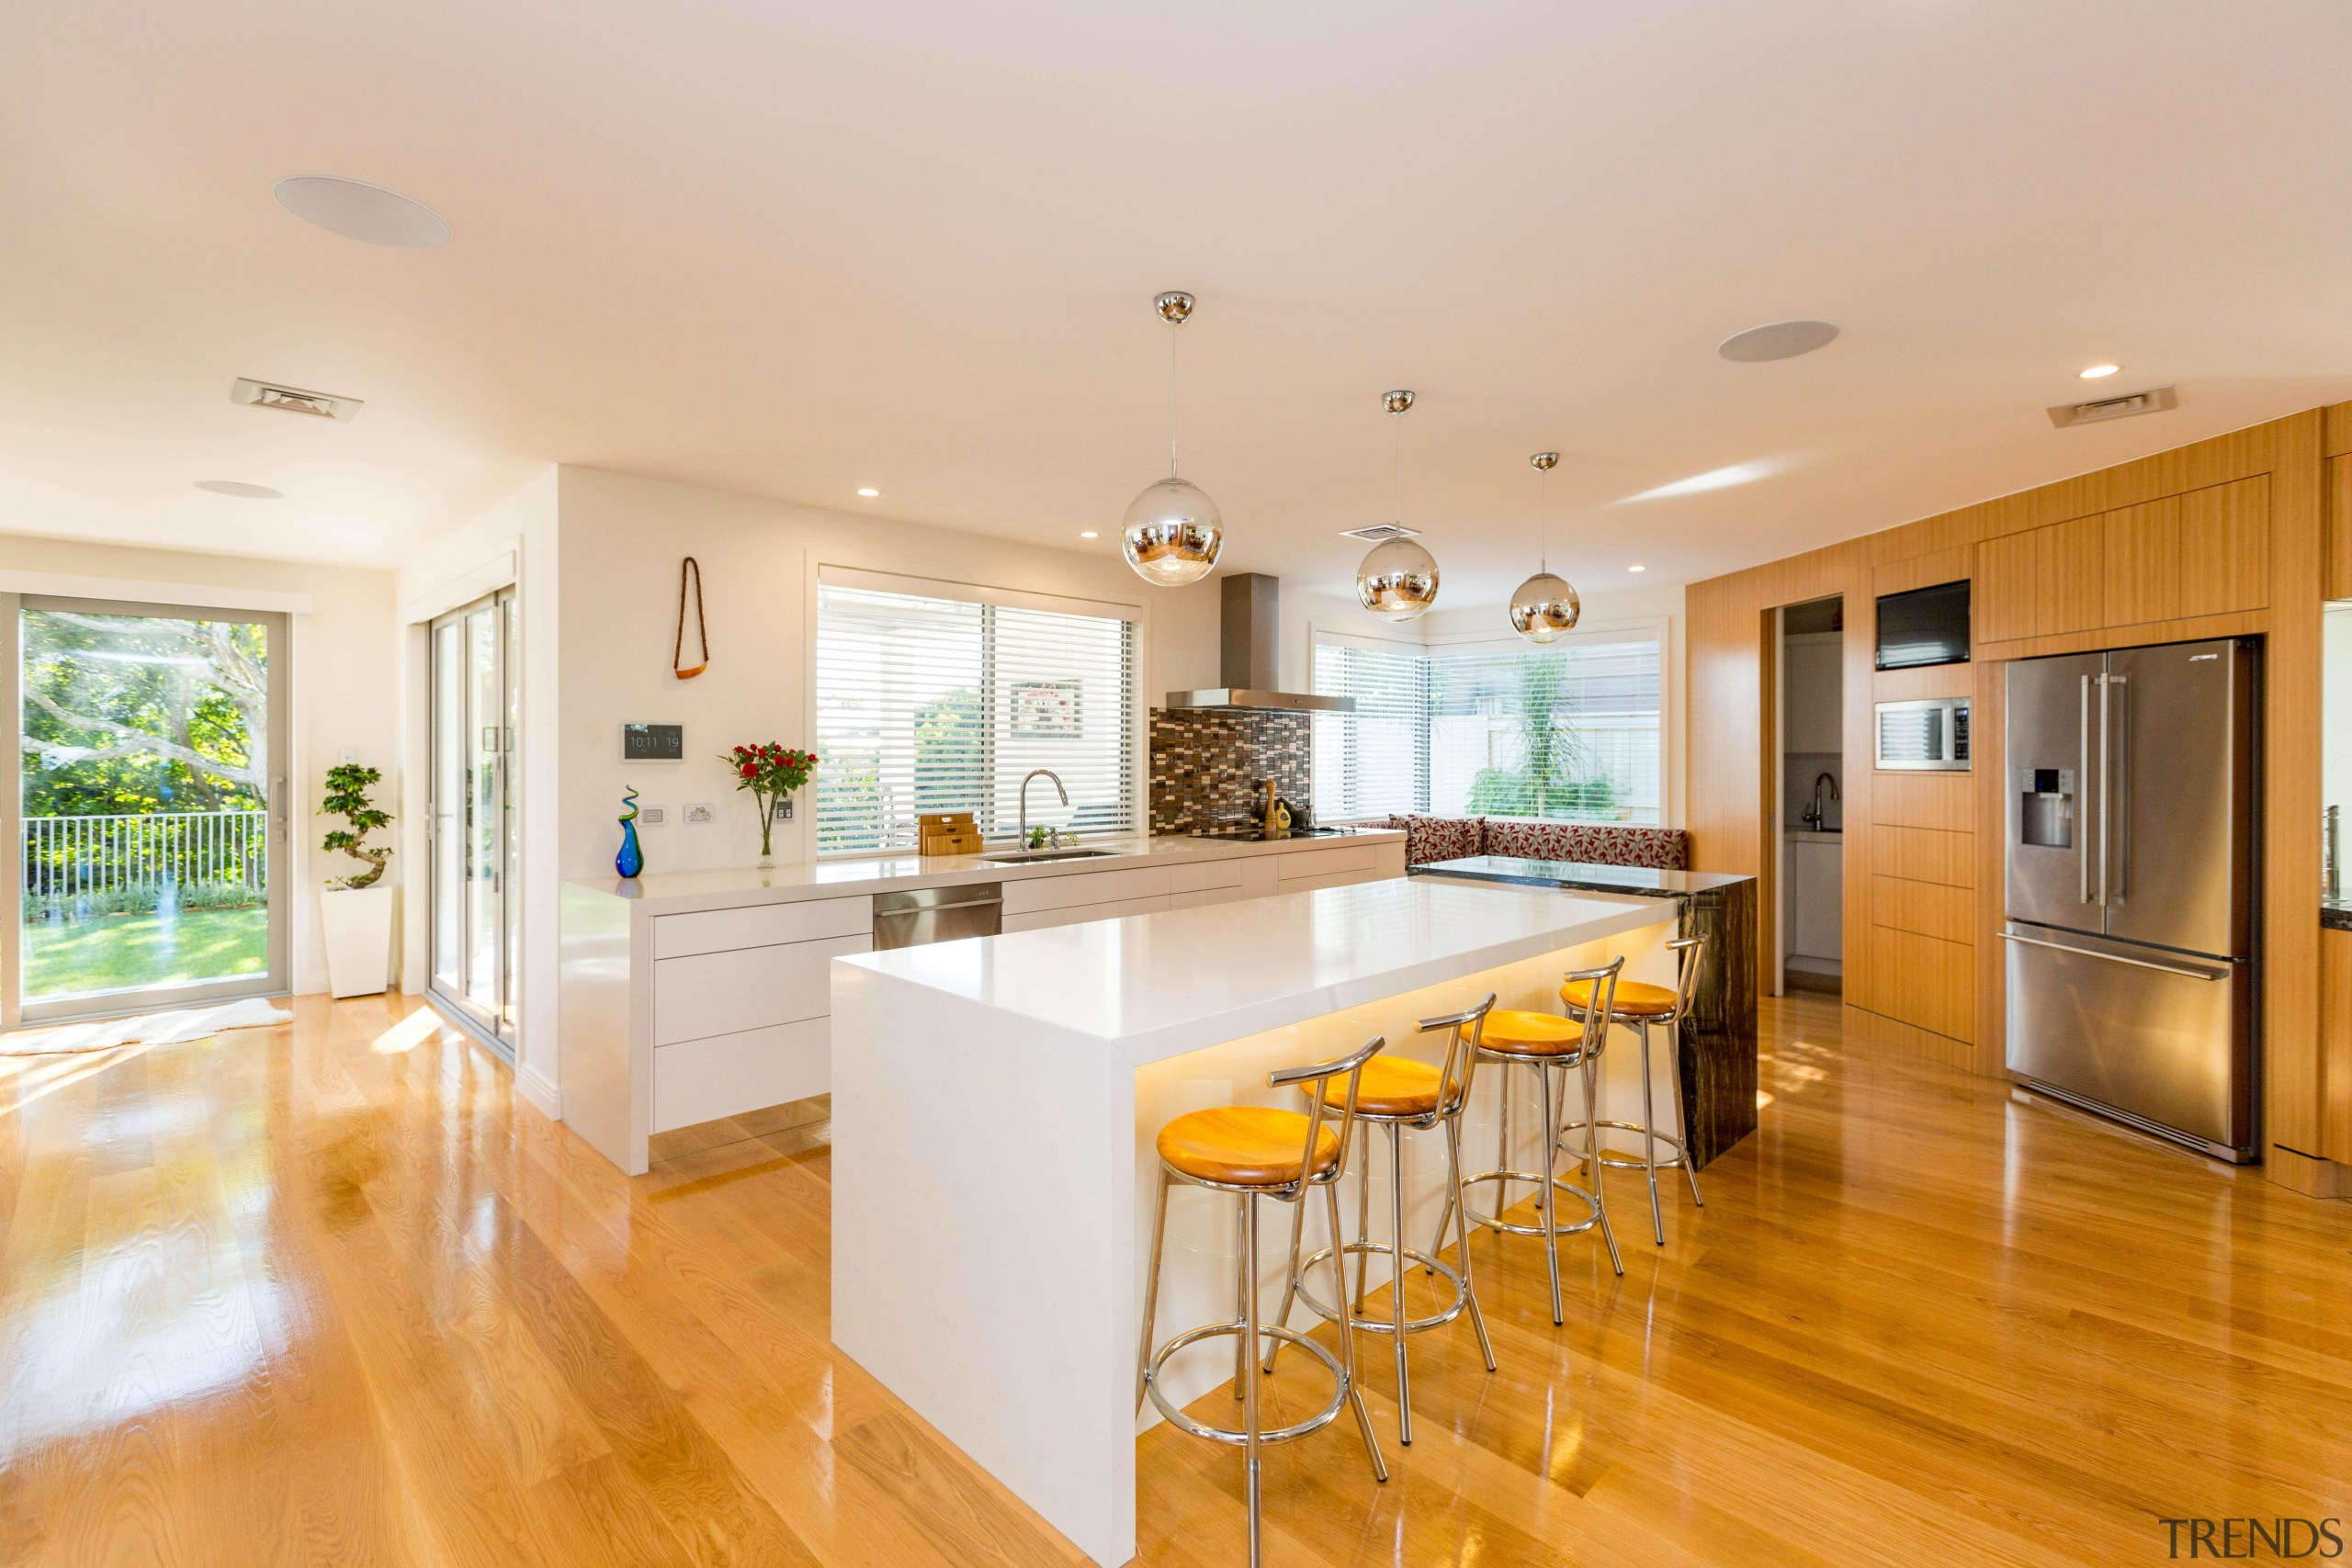 An expansive, light-filled kitchen is the hub of ceiling, countertop, estate, floor, flooring, hardwood, home, interior design, kitchen, laminate flooring, real estate, room, wood flooring, white, orange